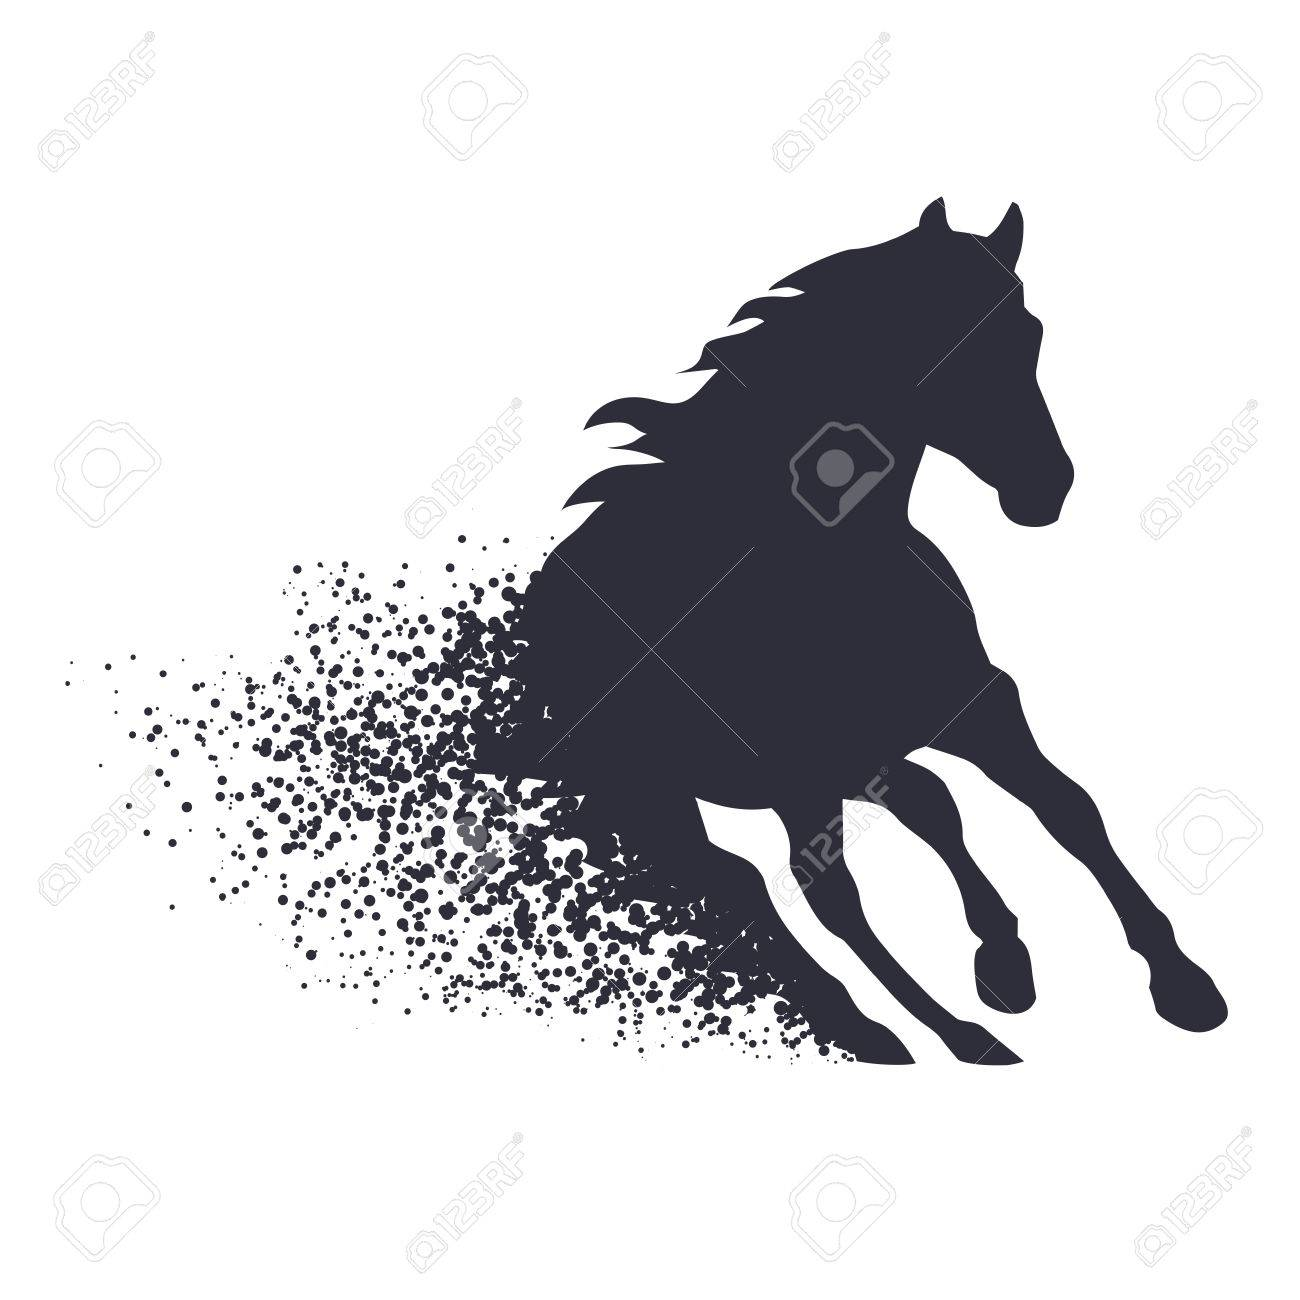 Running Horse In The Grunge Style Royalty Free Cliparts Vectors And Stock Illustration Image 40859367